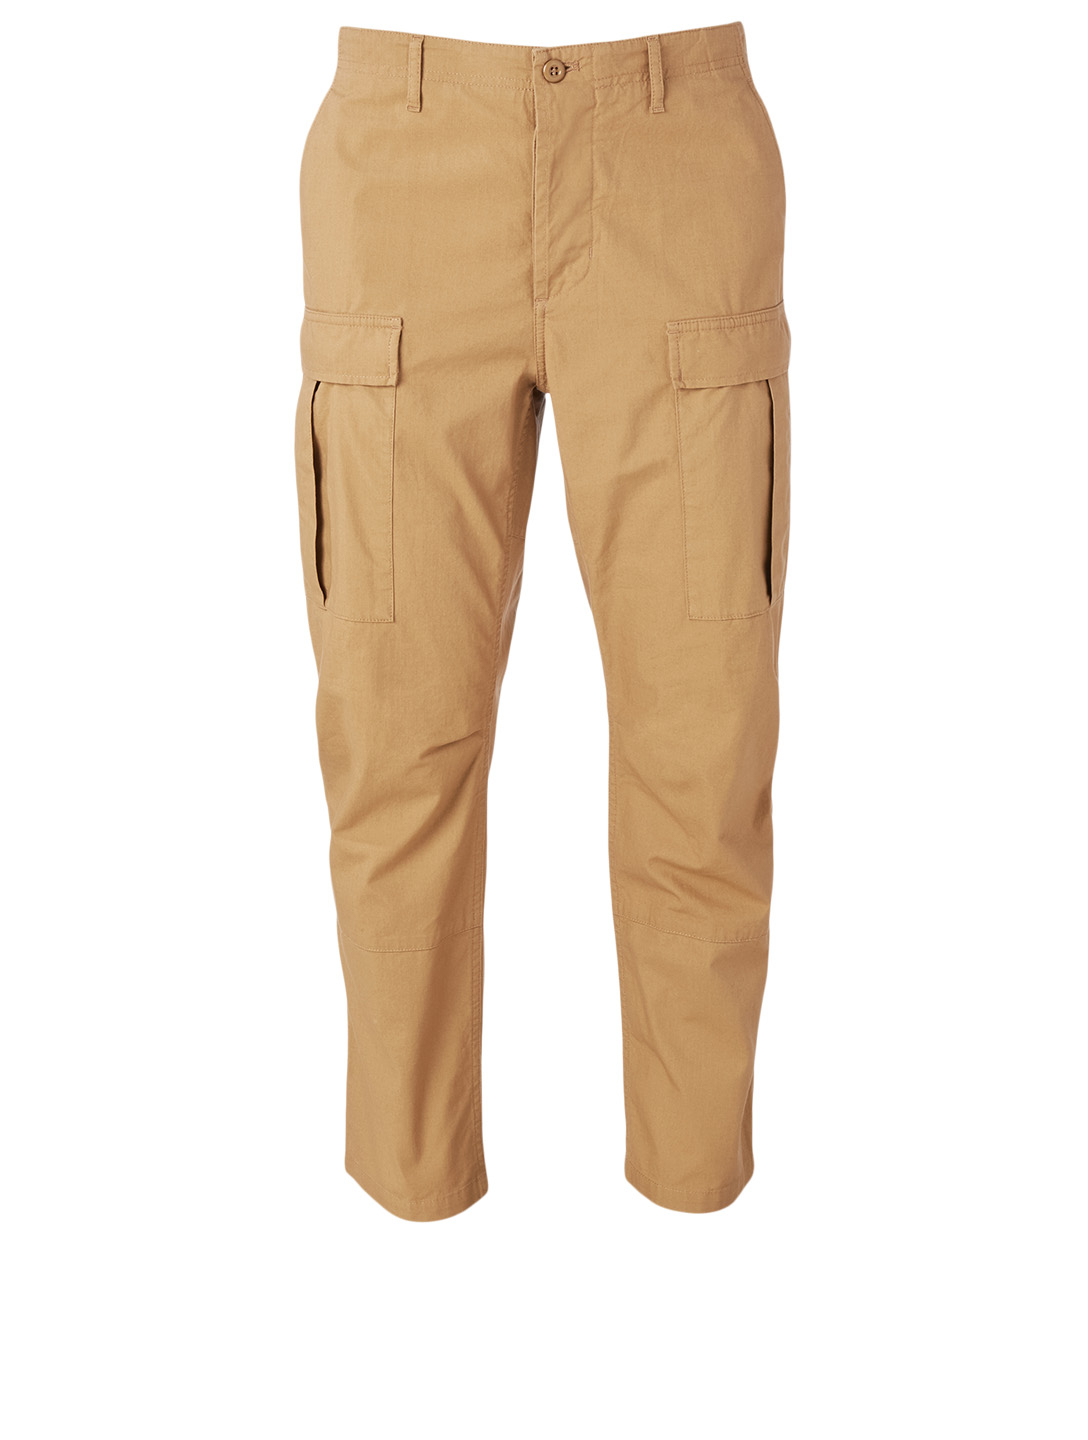 BALENCIAGA Cotton Army Pants Men's Beige